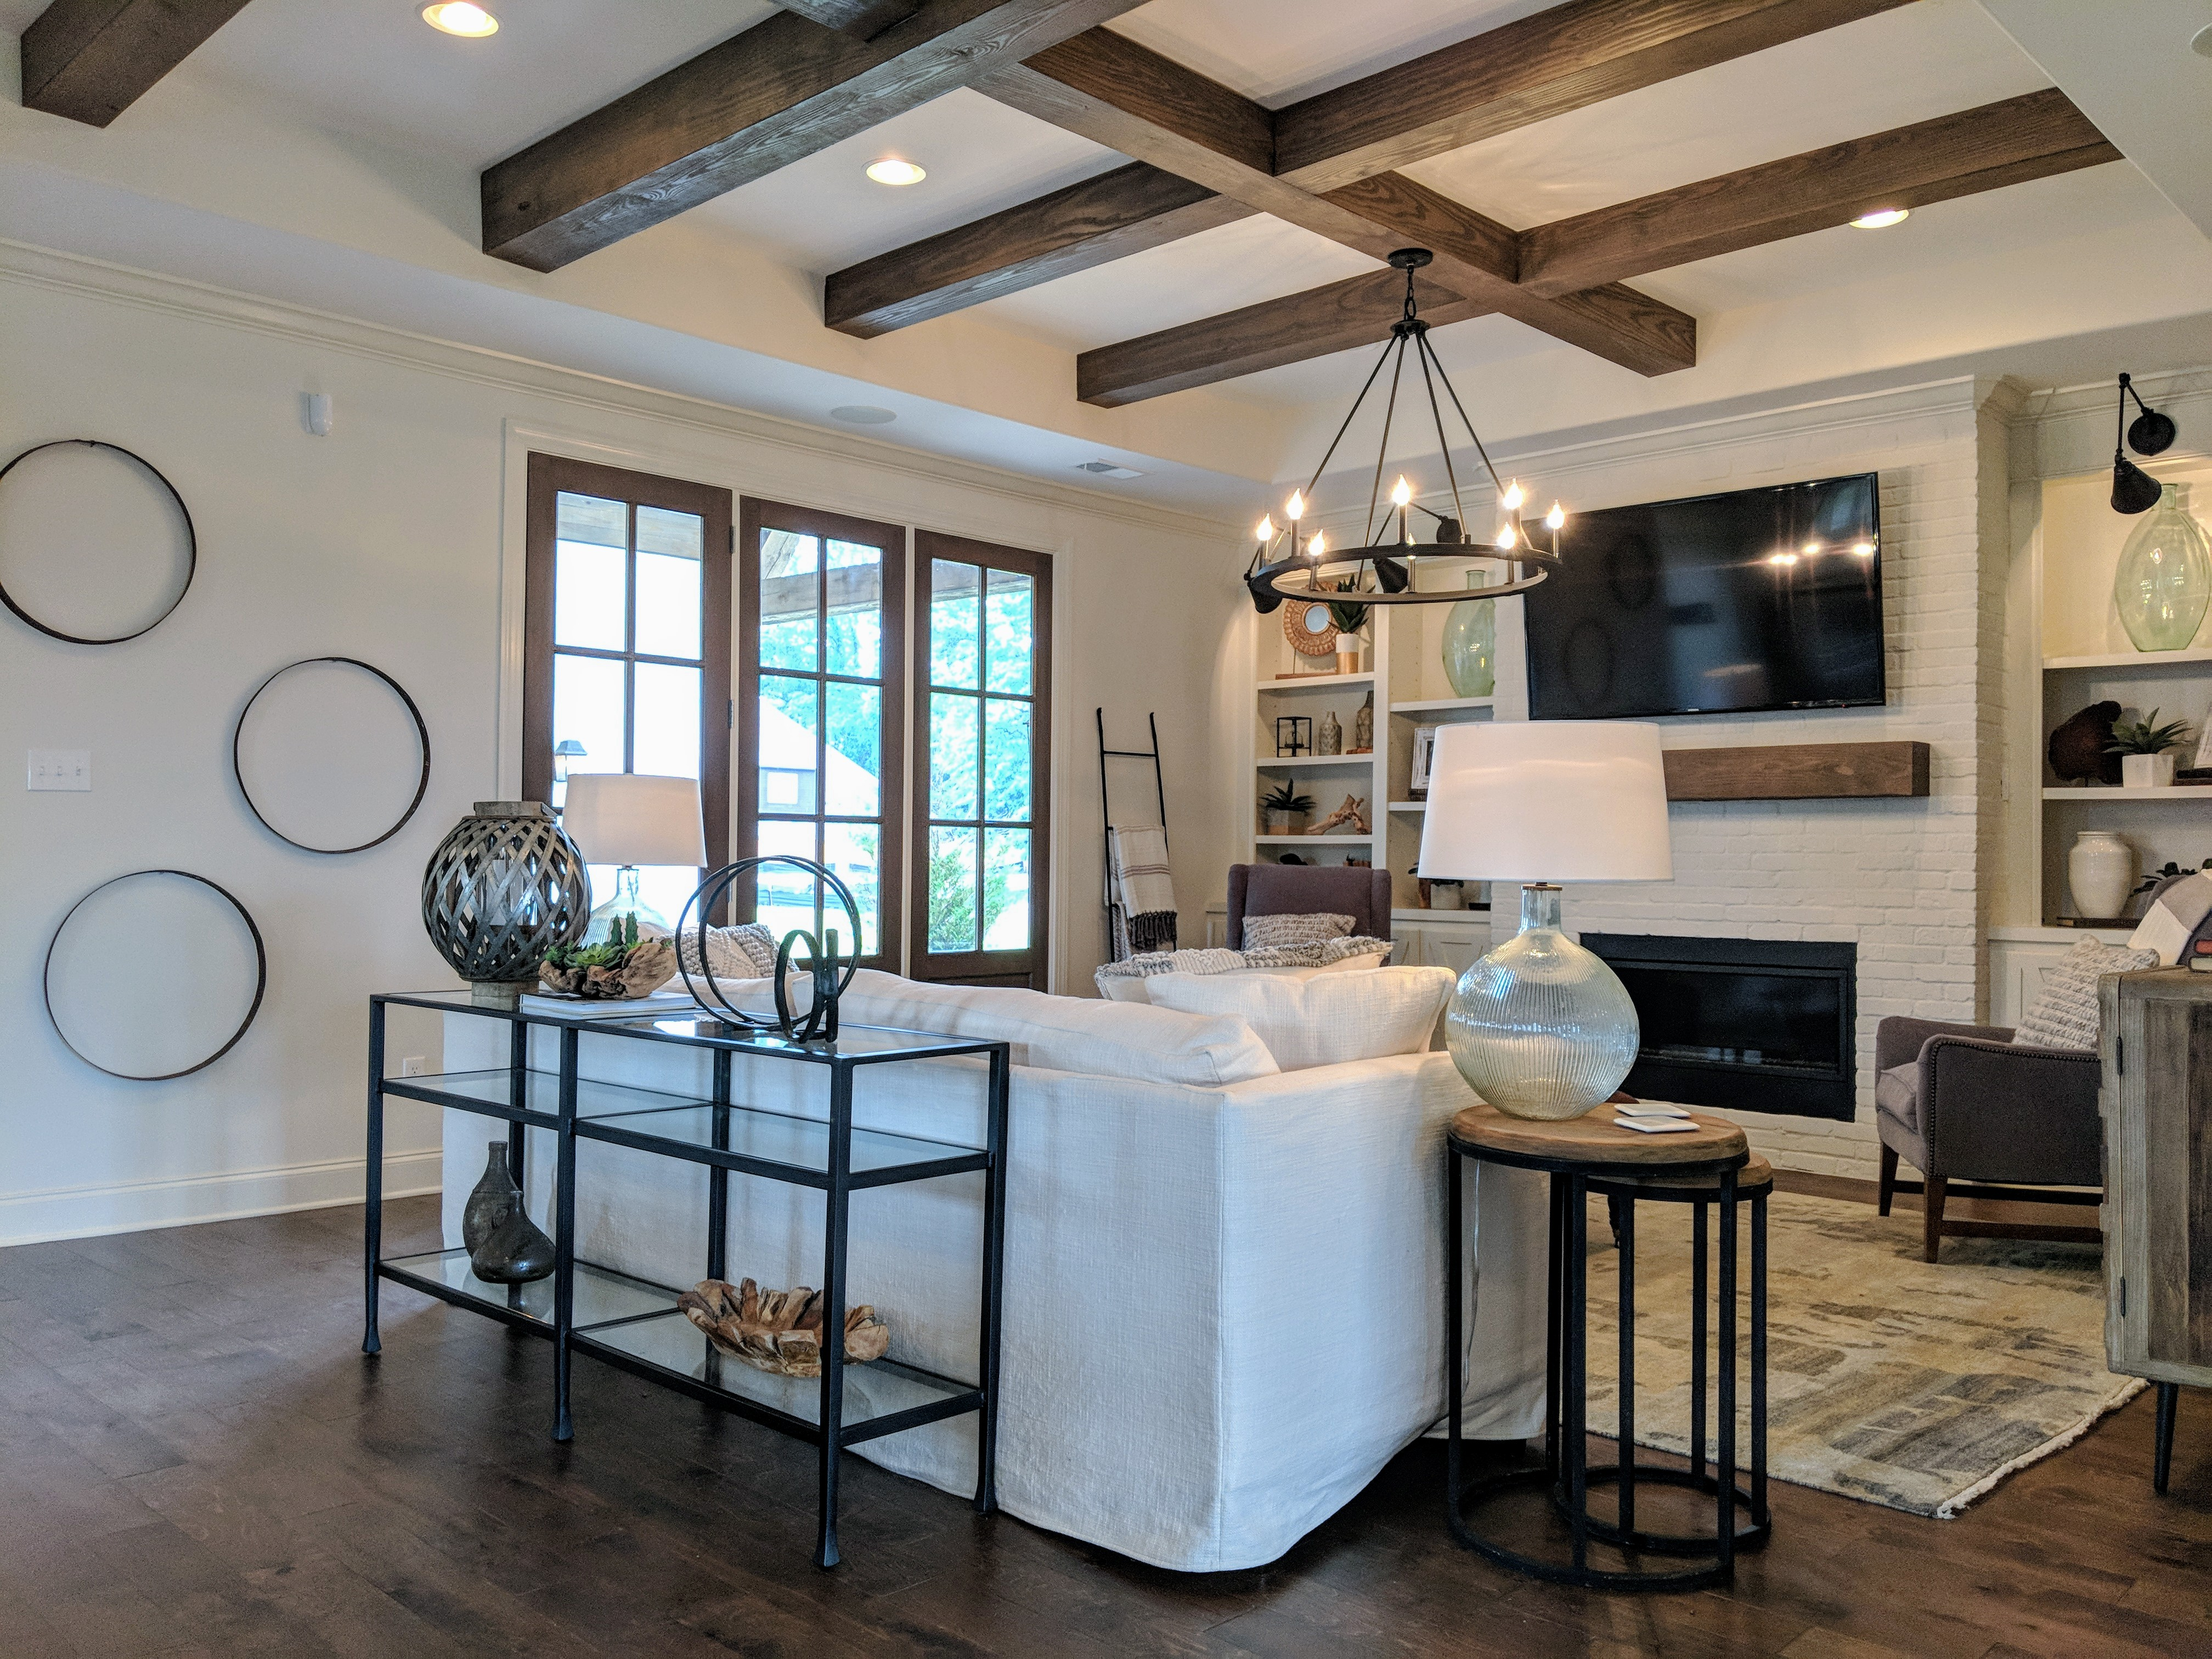 Homes for sales in Memphis area. Kitchen with breakfast bar has a pass through serving station to dining room. A feature I rather like.